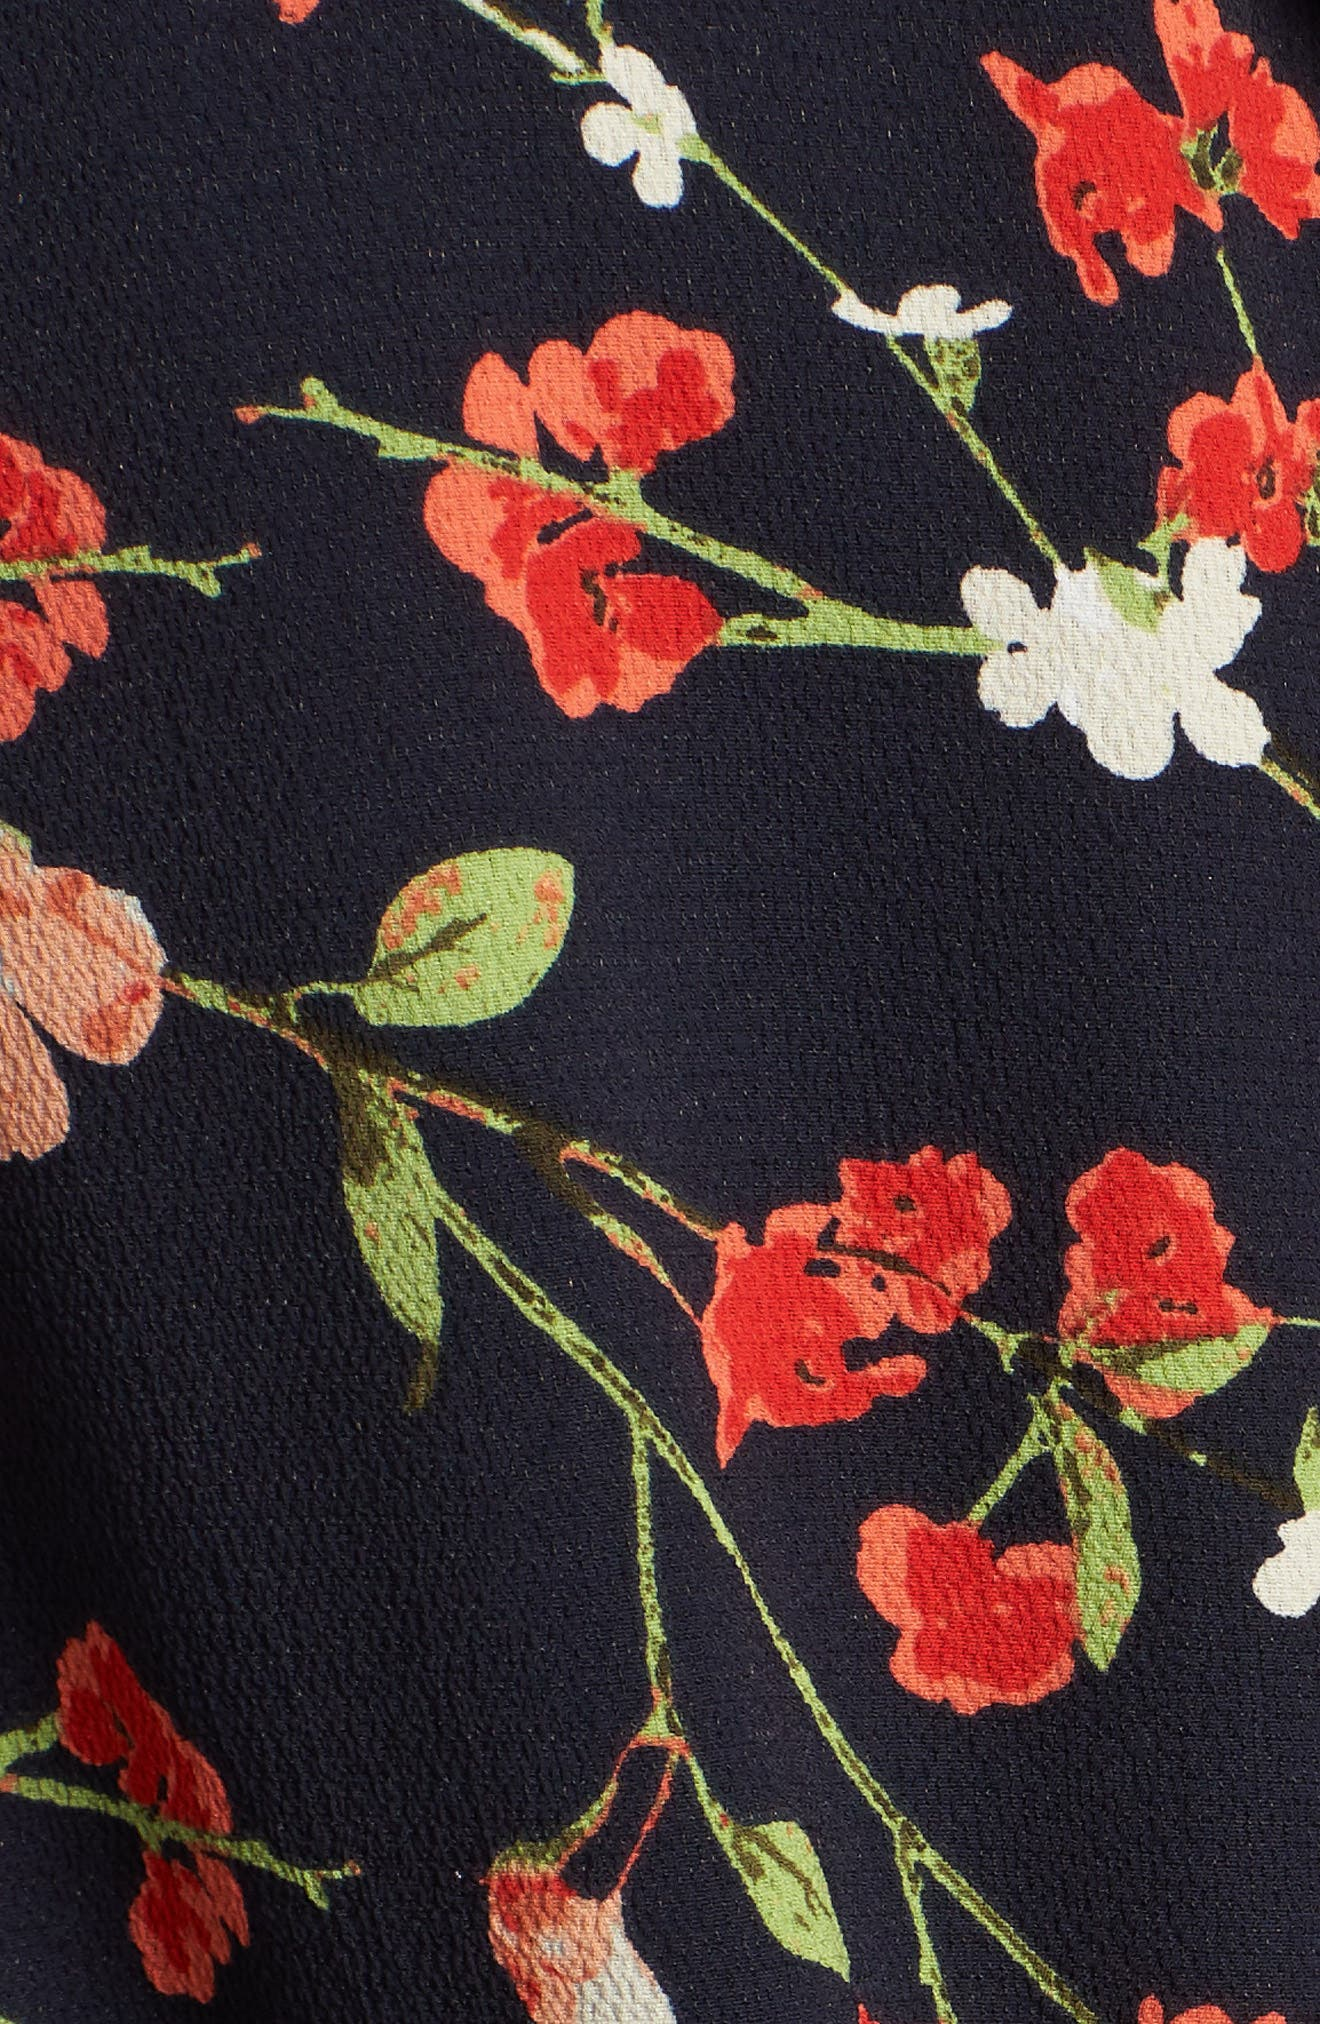 Relaxed Tie Front Top,                             Alternate thumbnail 6, color,                             Black Print With Red Flowers